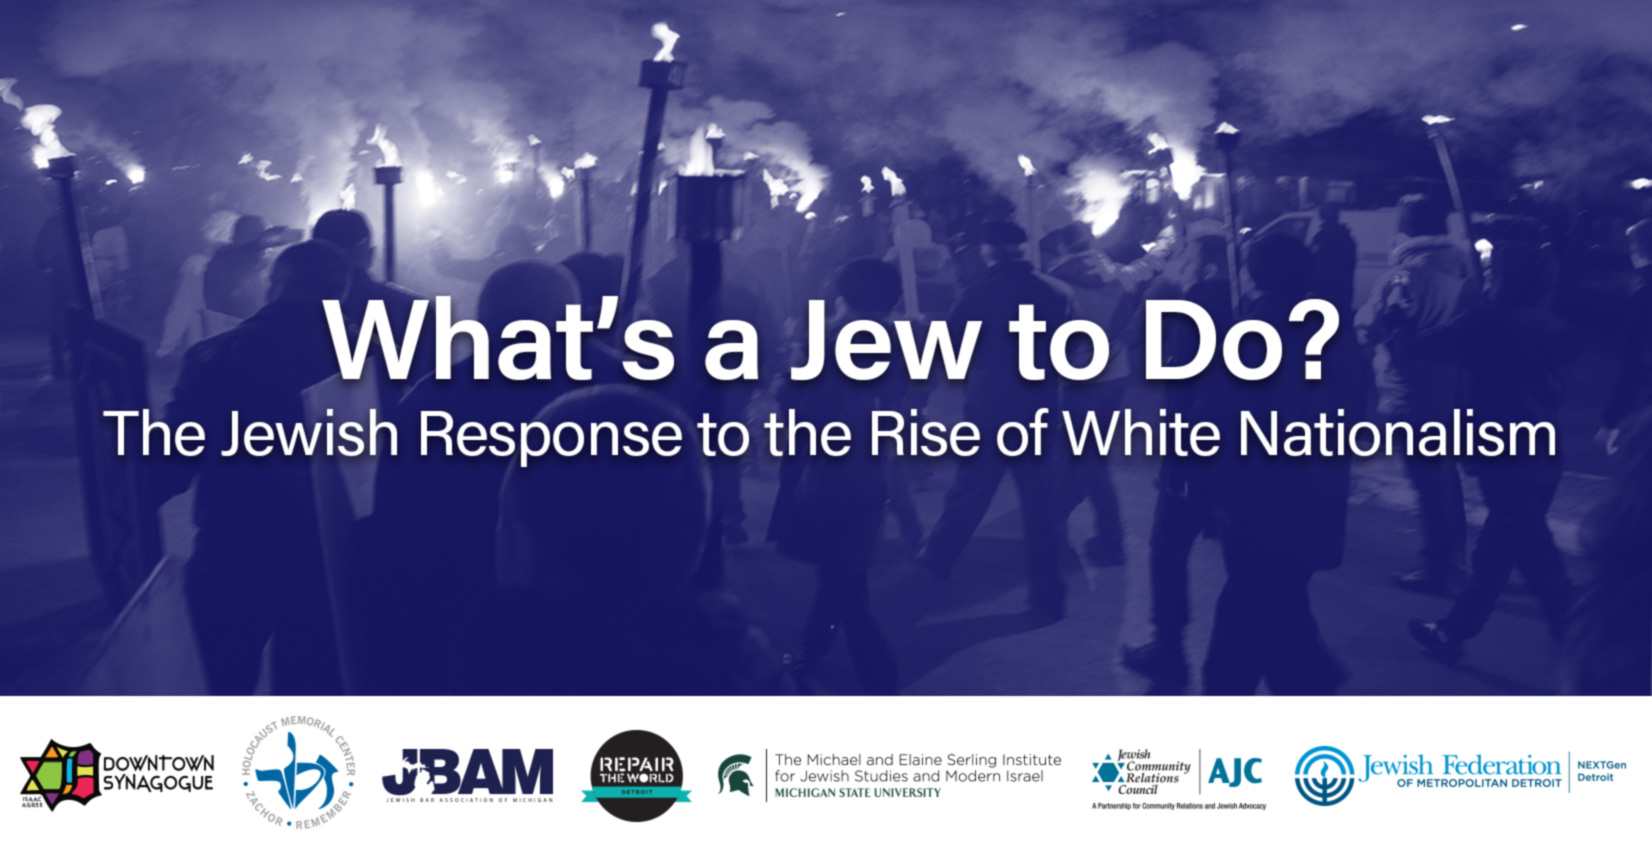 NextGen Presents: What's a Jew to Do? The Jewish Response to the Rise in White Nationalism @ Holocaust Memorial Center Zekelman Family Campus